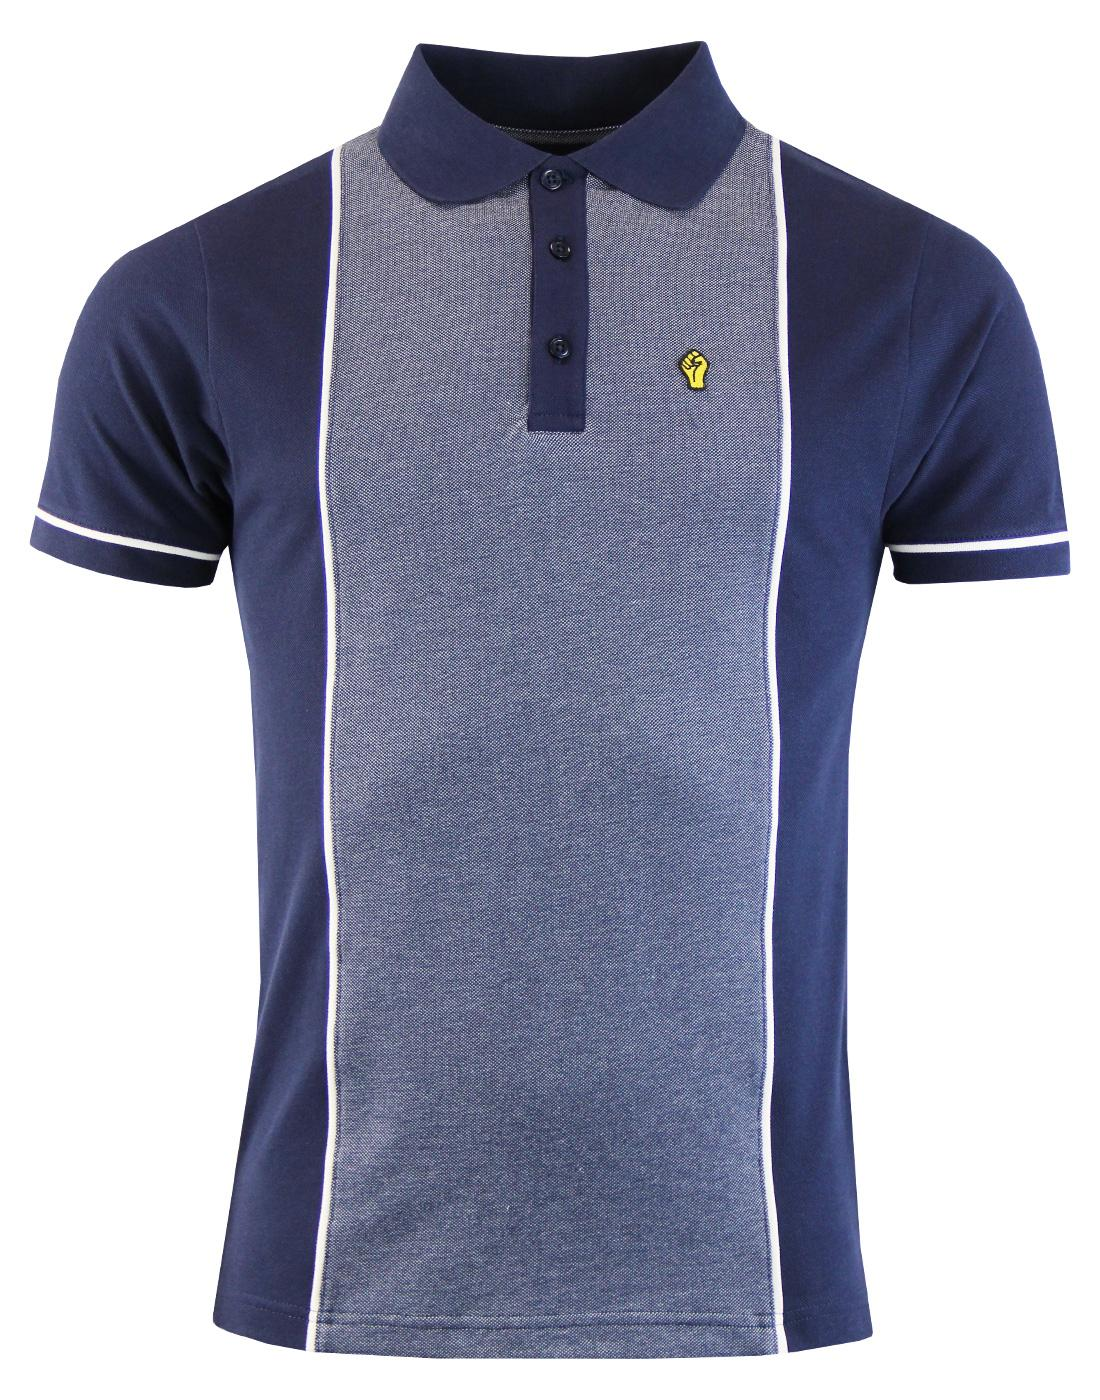 WIGAN CASINO Mod Oxford Panel Pique Polo Shirt (N)